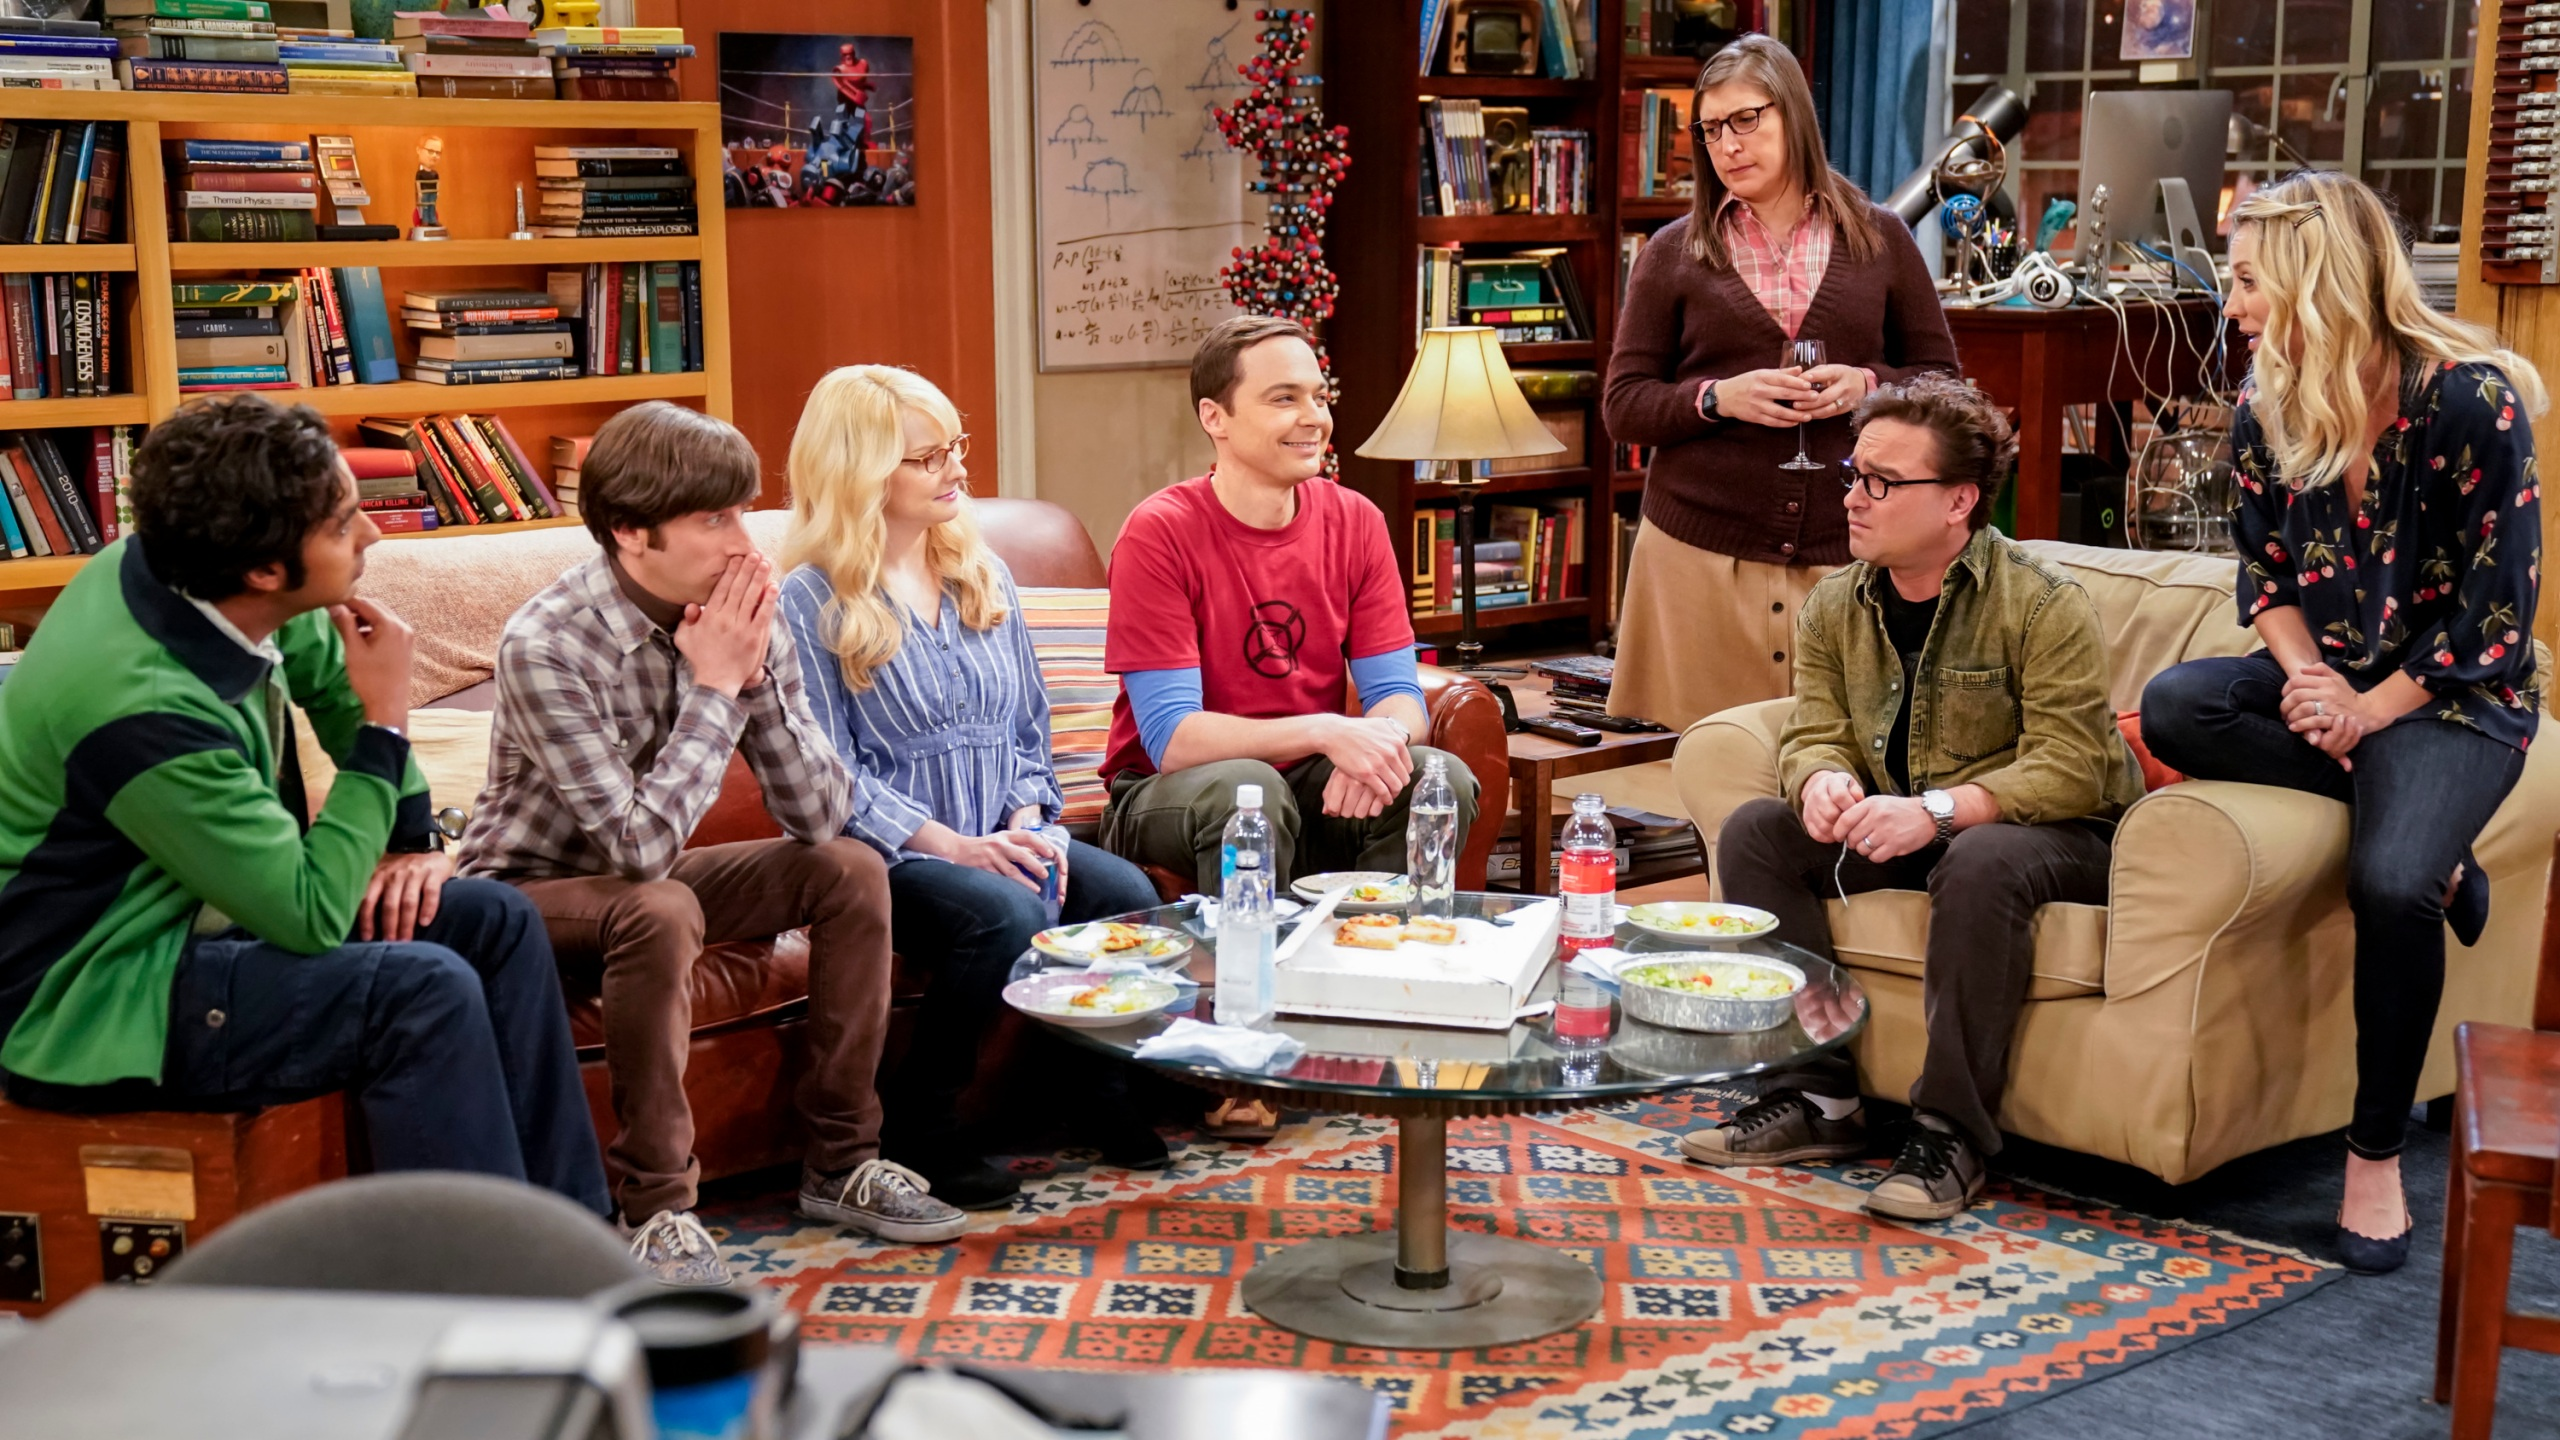 TV_Big_Bang_Theory_85659-159532.jpg55736349